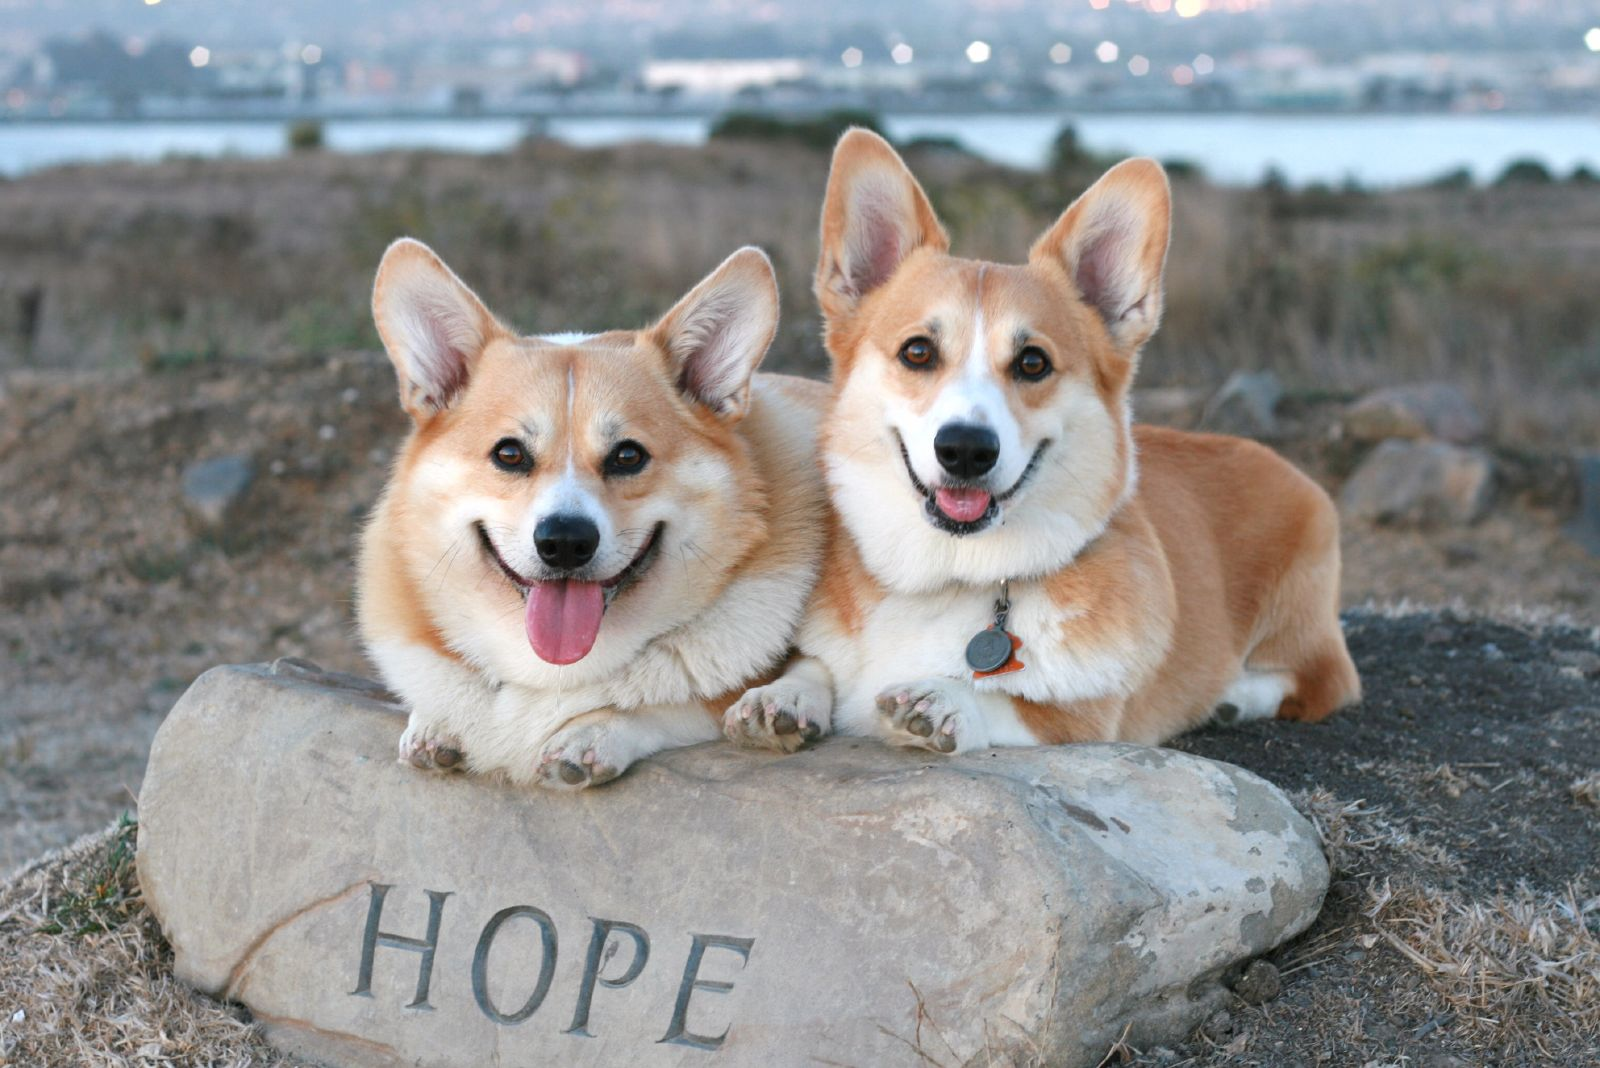 + Hope dogs